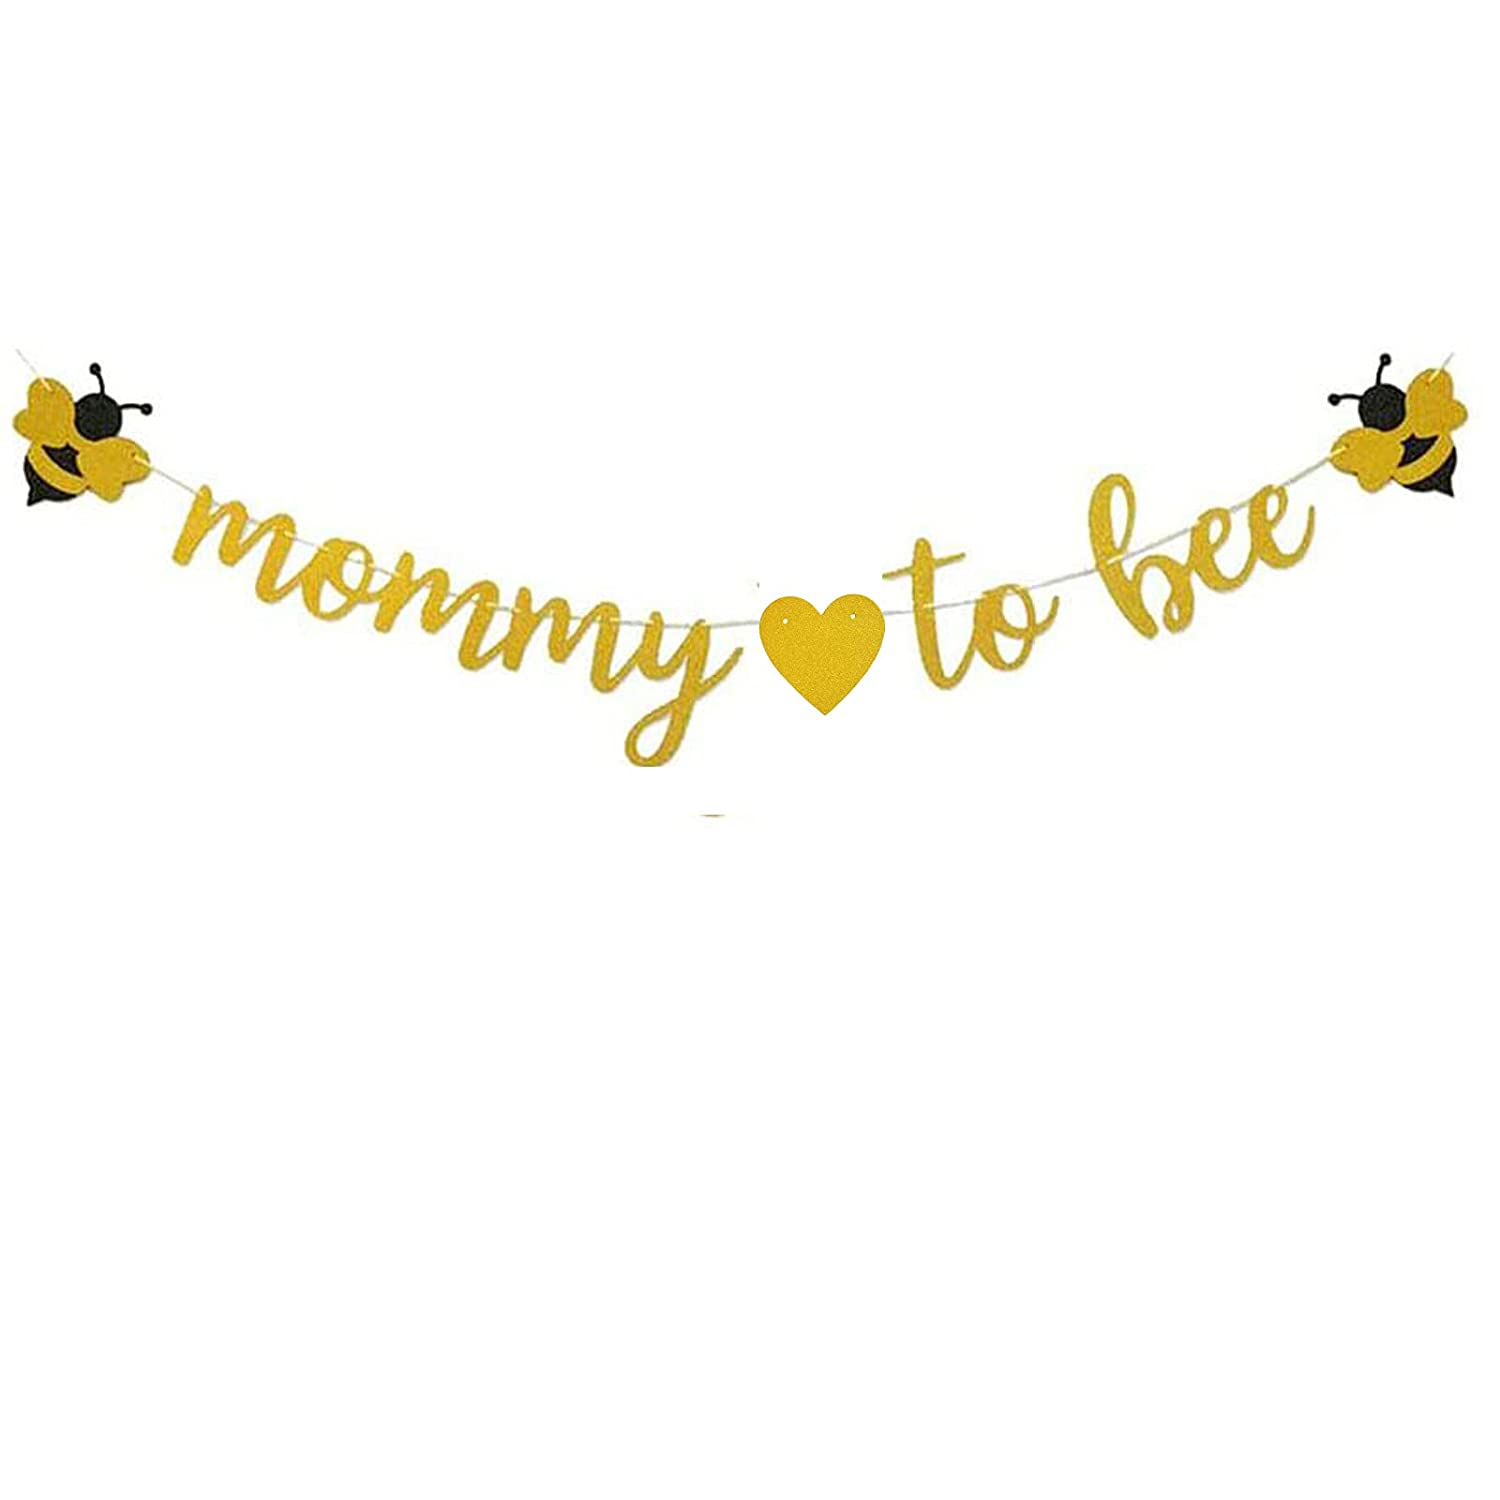 Mommy to Bee Banner,Happy Bee Day Decoration Bumble Bee First Birthday Decor,Bee Theme Baby Shower/Gender Reveal Party Decorations(bee).